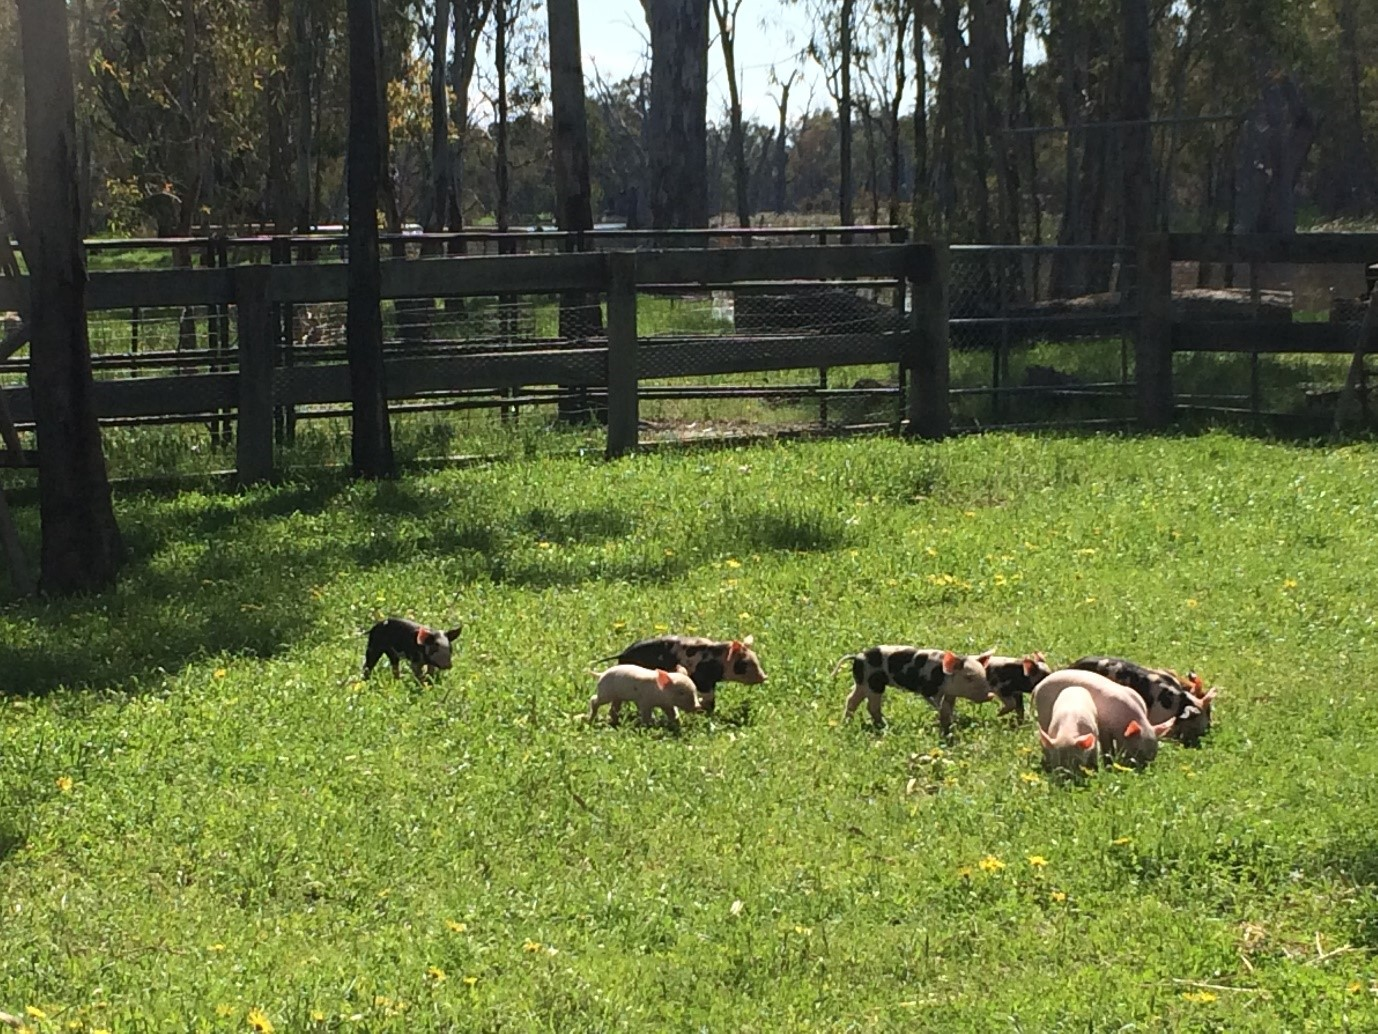 Piglets foraging on a farm